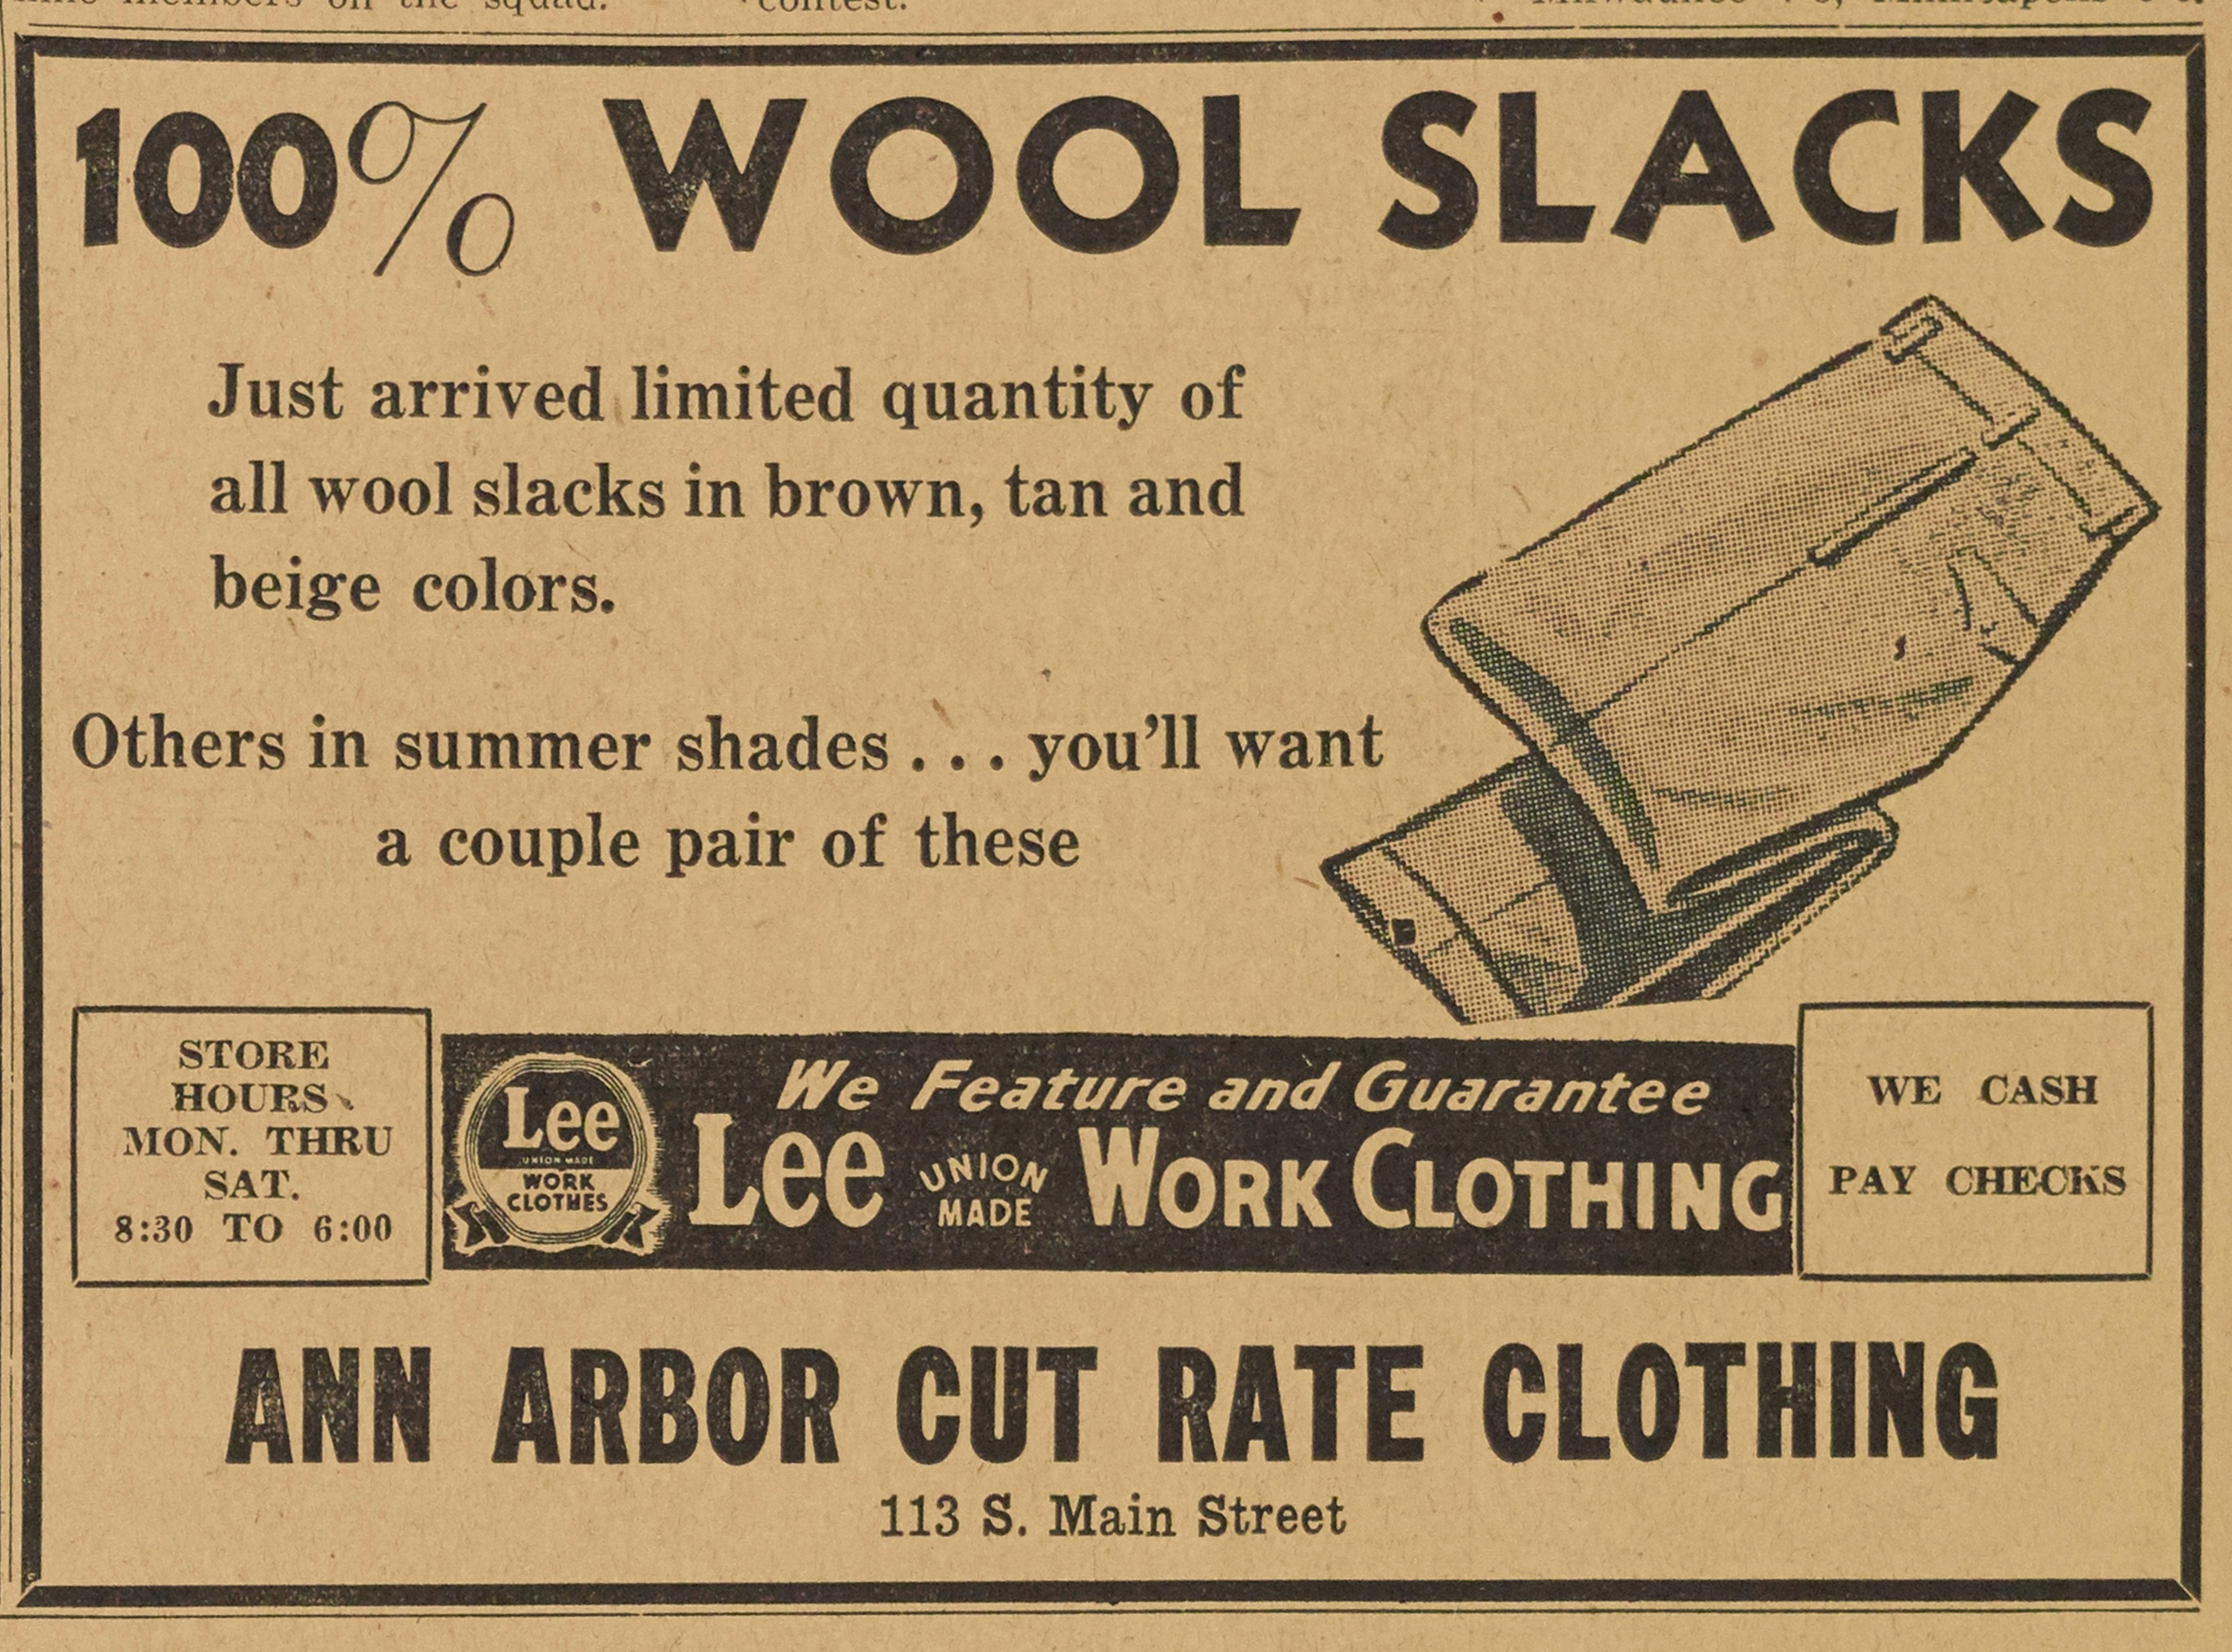 Ann Arbor Cut Rate Clothing image